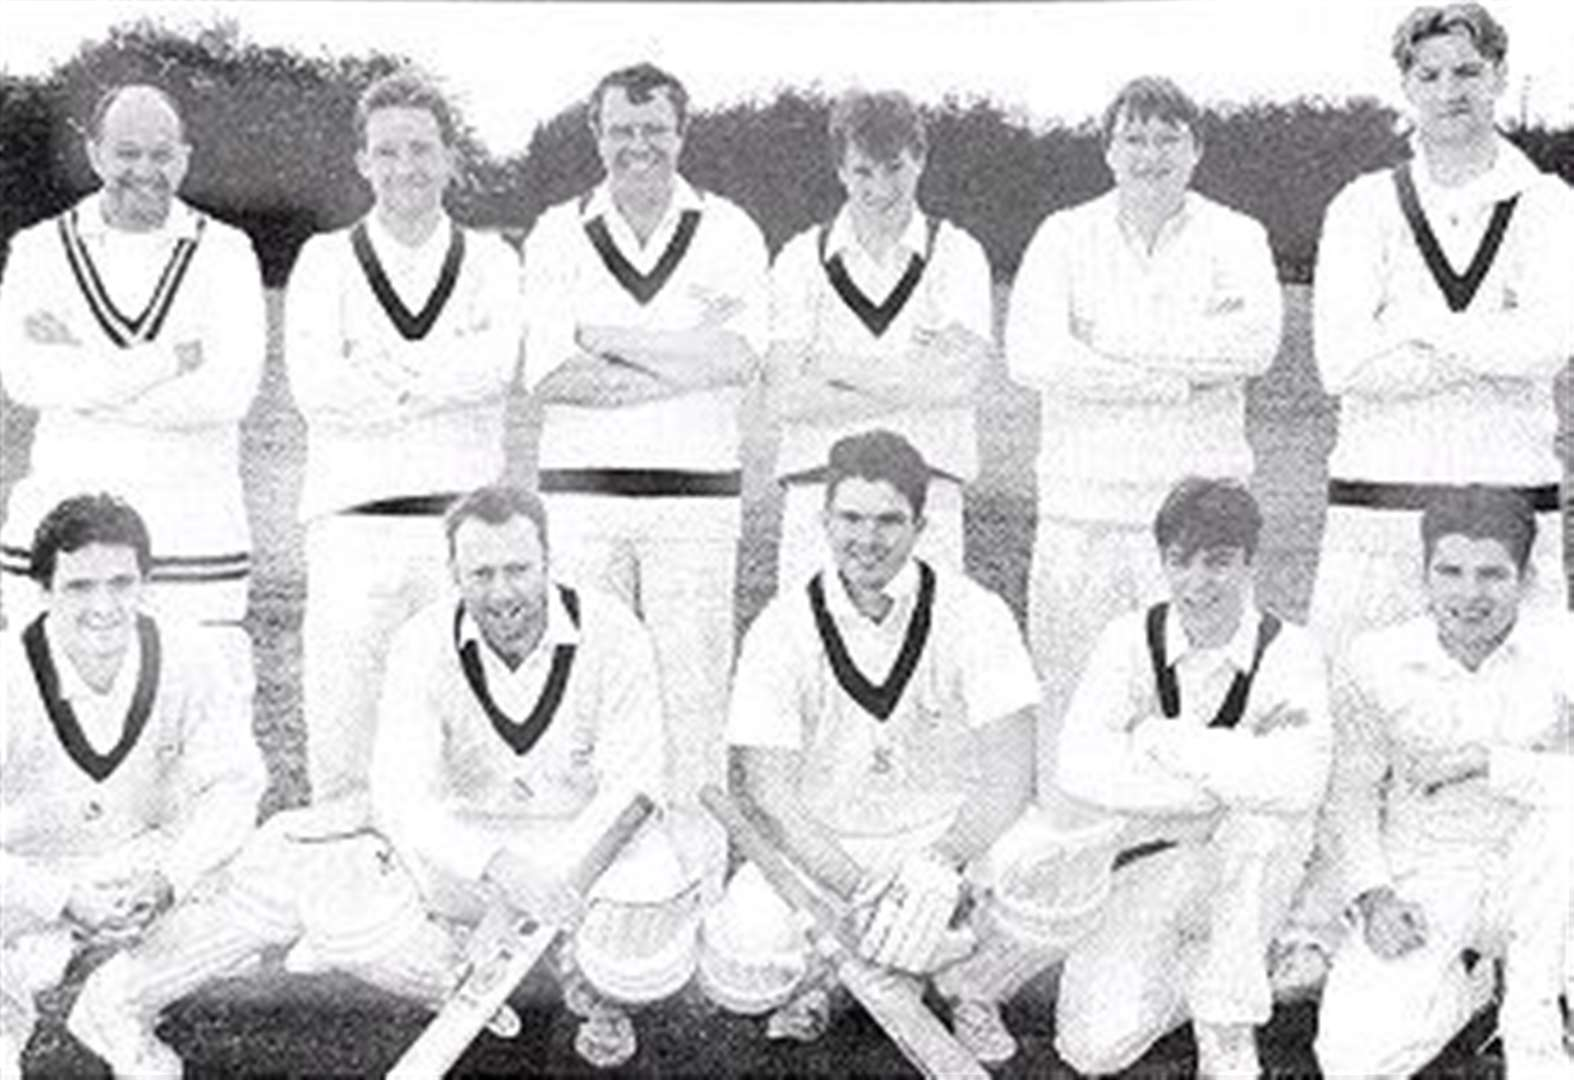 NOSTALGIA: Spalding 1st XI from 25 years ago